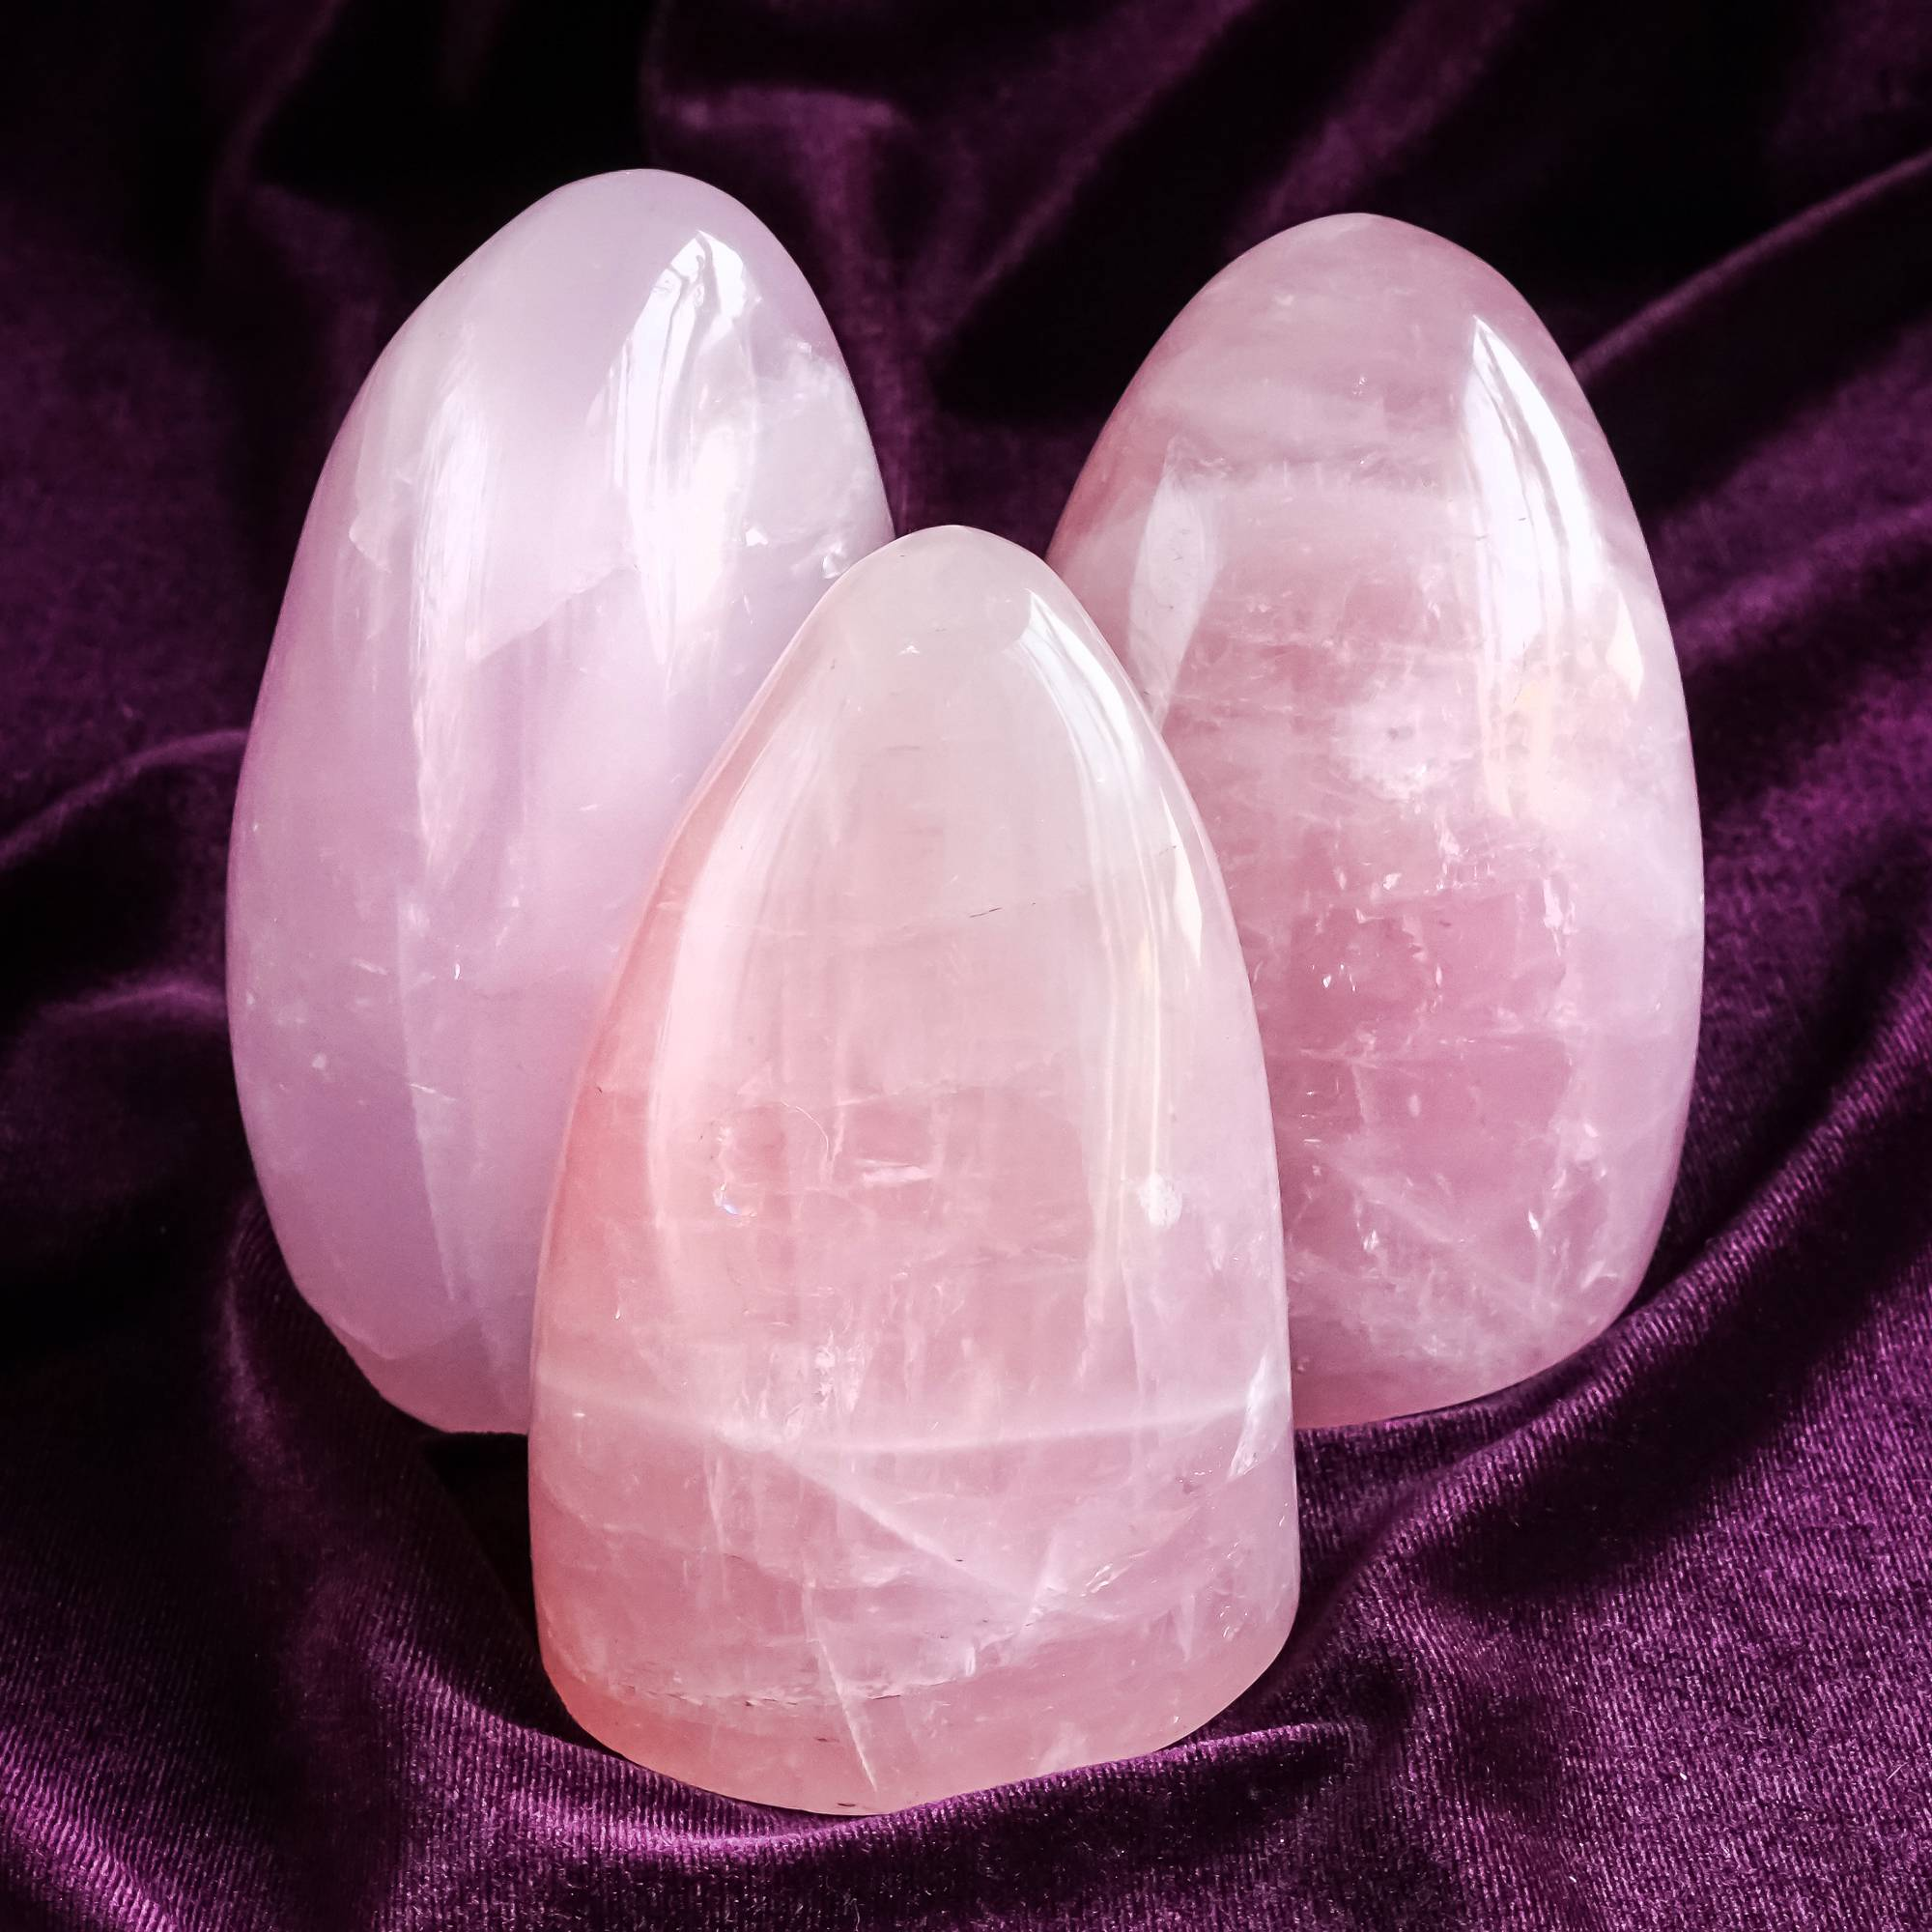 rose quartz pillars for an infusion of self love and heart healing